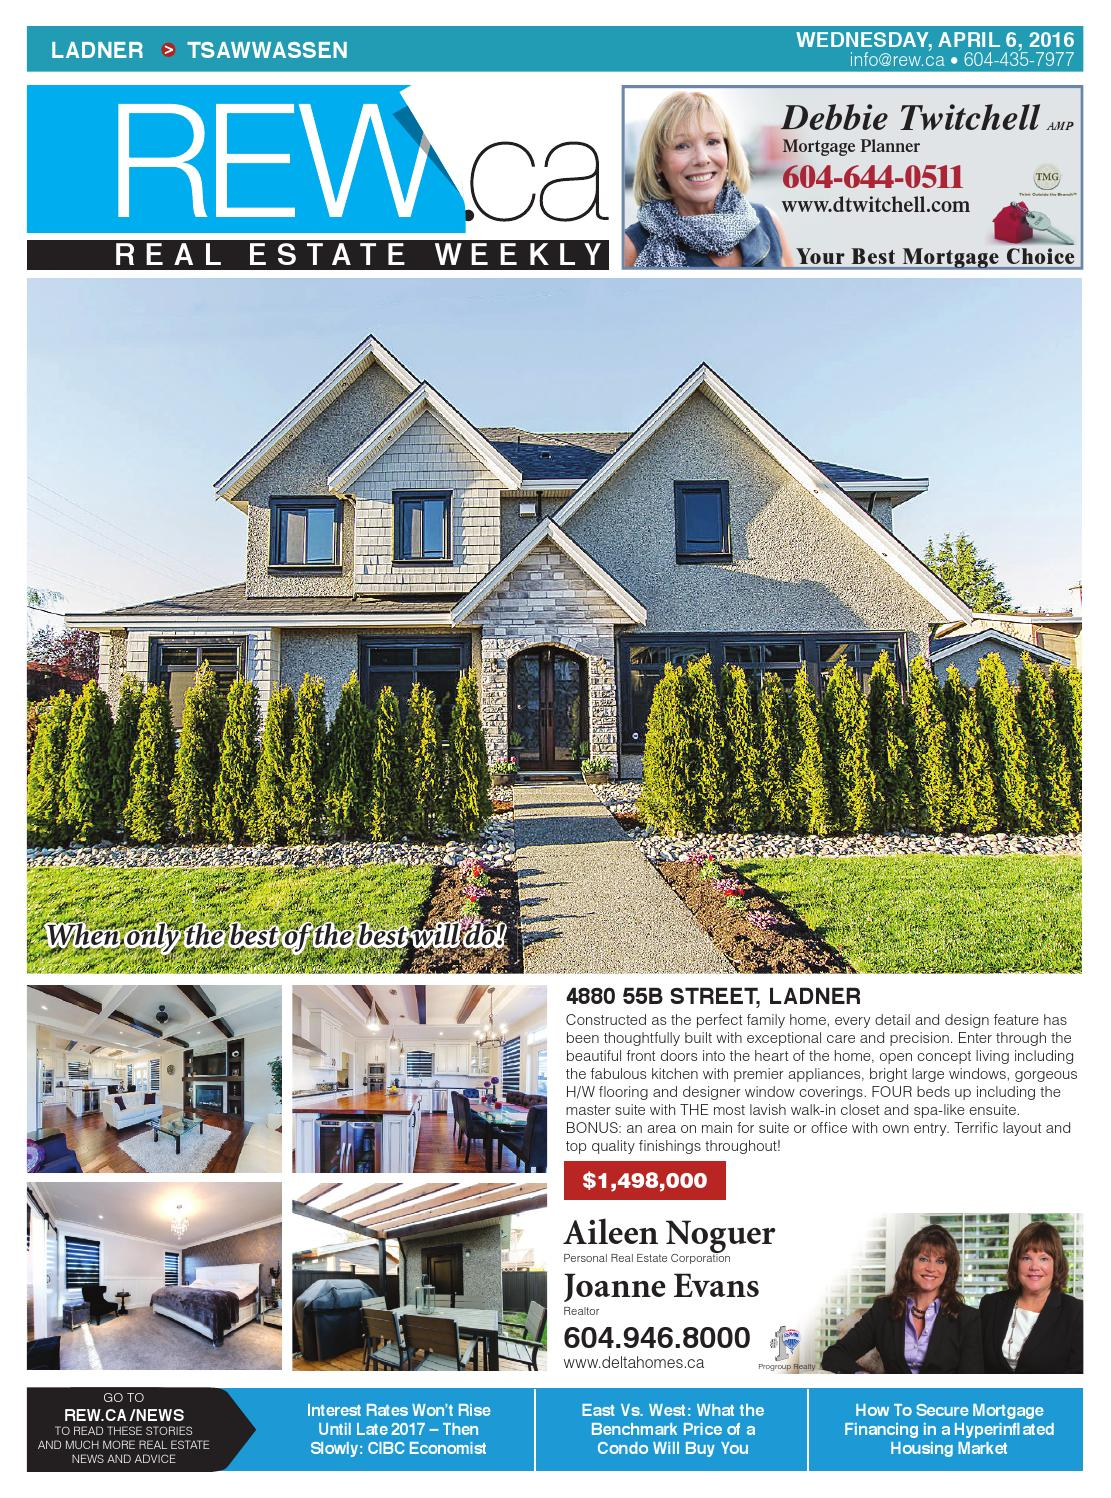 realtor and interior designer debbie evans realtor interior design consultant remax west LADNER - TSAWWASSEN Apr 6, 2016 Real Estate Weekly by Real Estate Weekly -  issuu